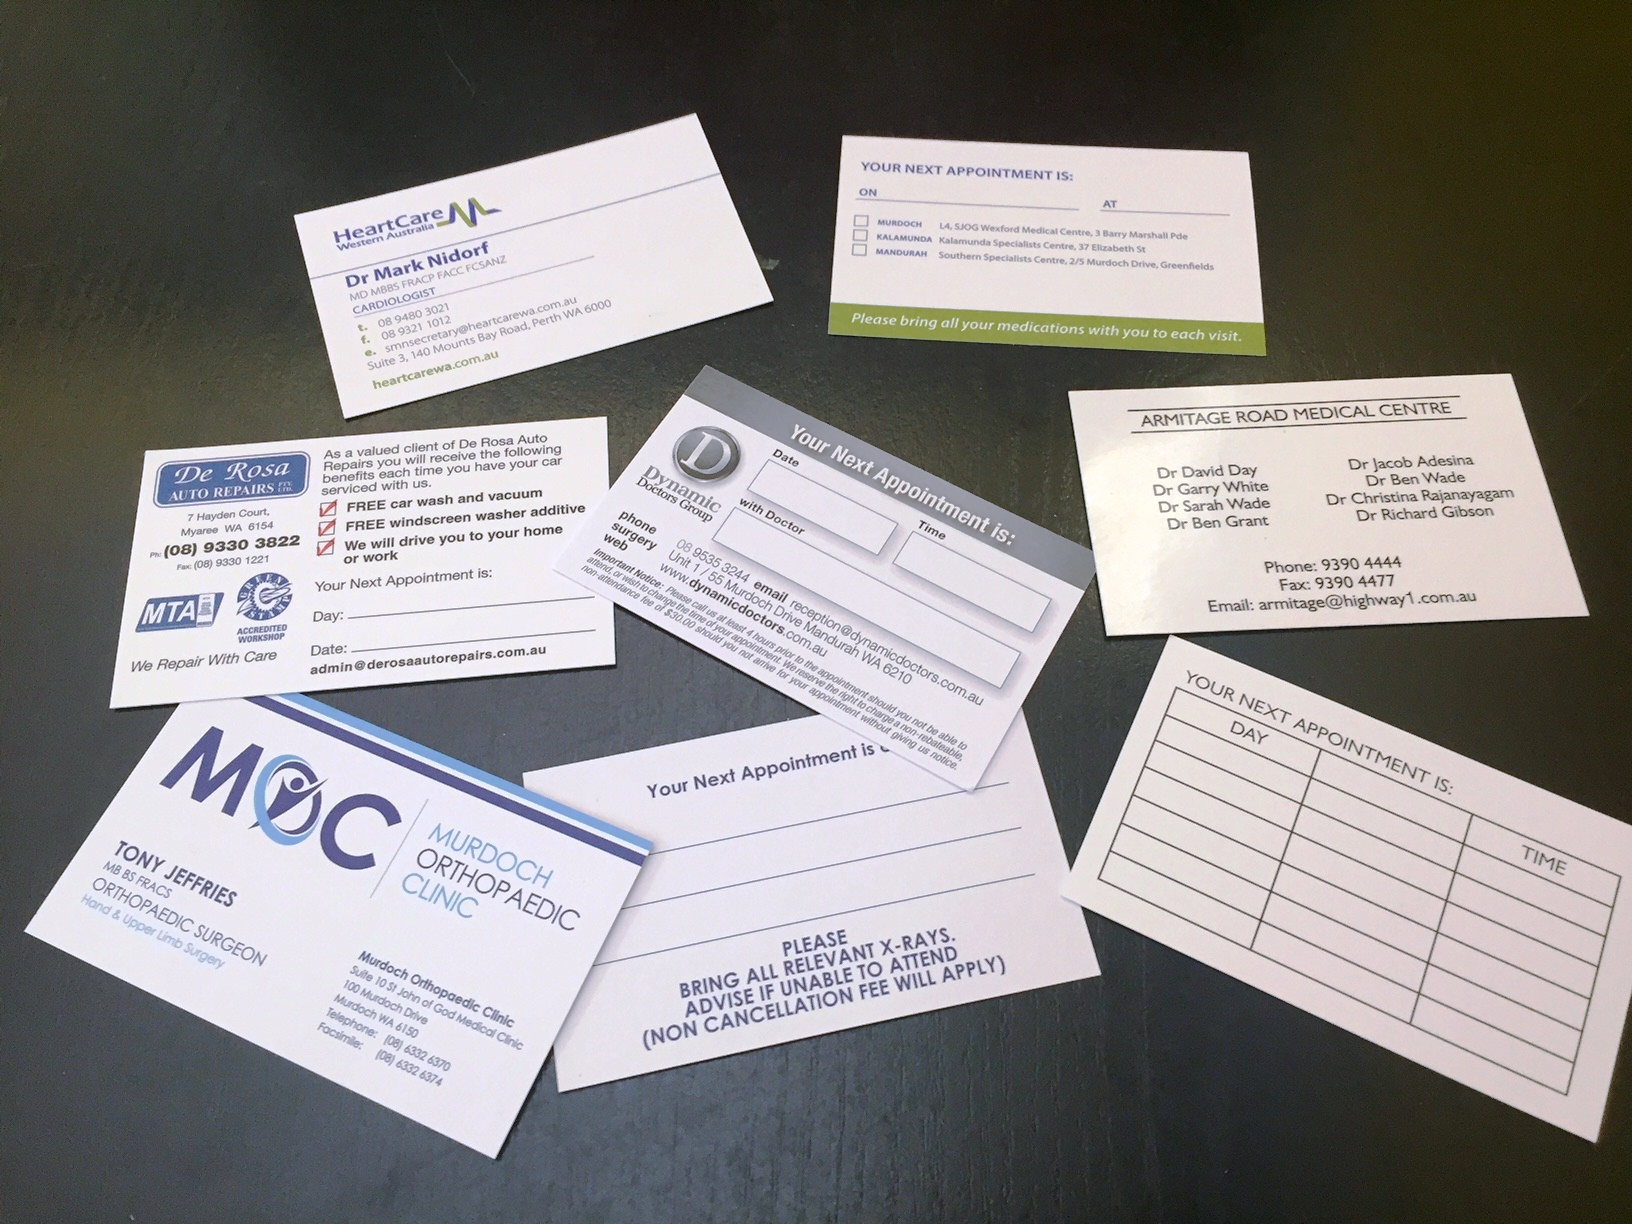 Printed Appointment Cards by G Force Printing Perth